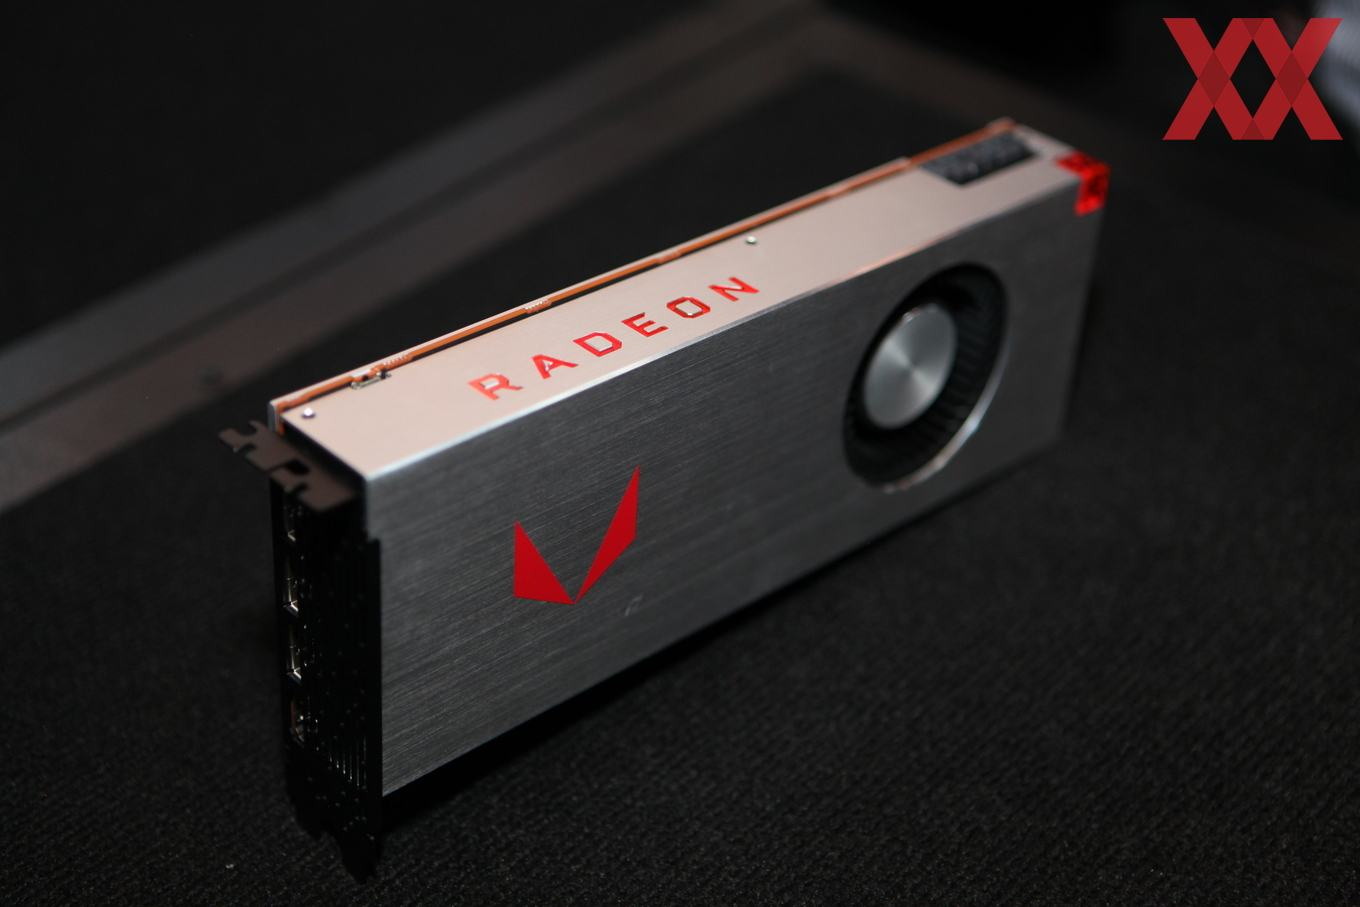 Amd Radeon Rx Vega 64 Gpus Spotted In Liquid And Air Cooled Versions Ahead Of Official Launch Notebookcheck Net News